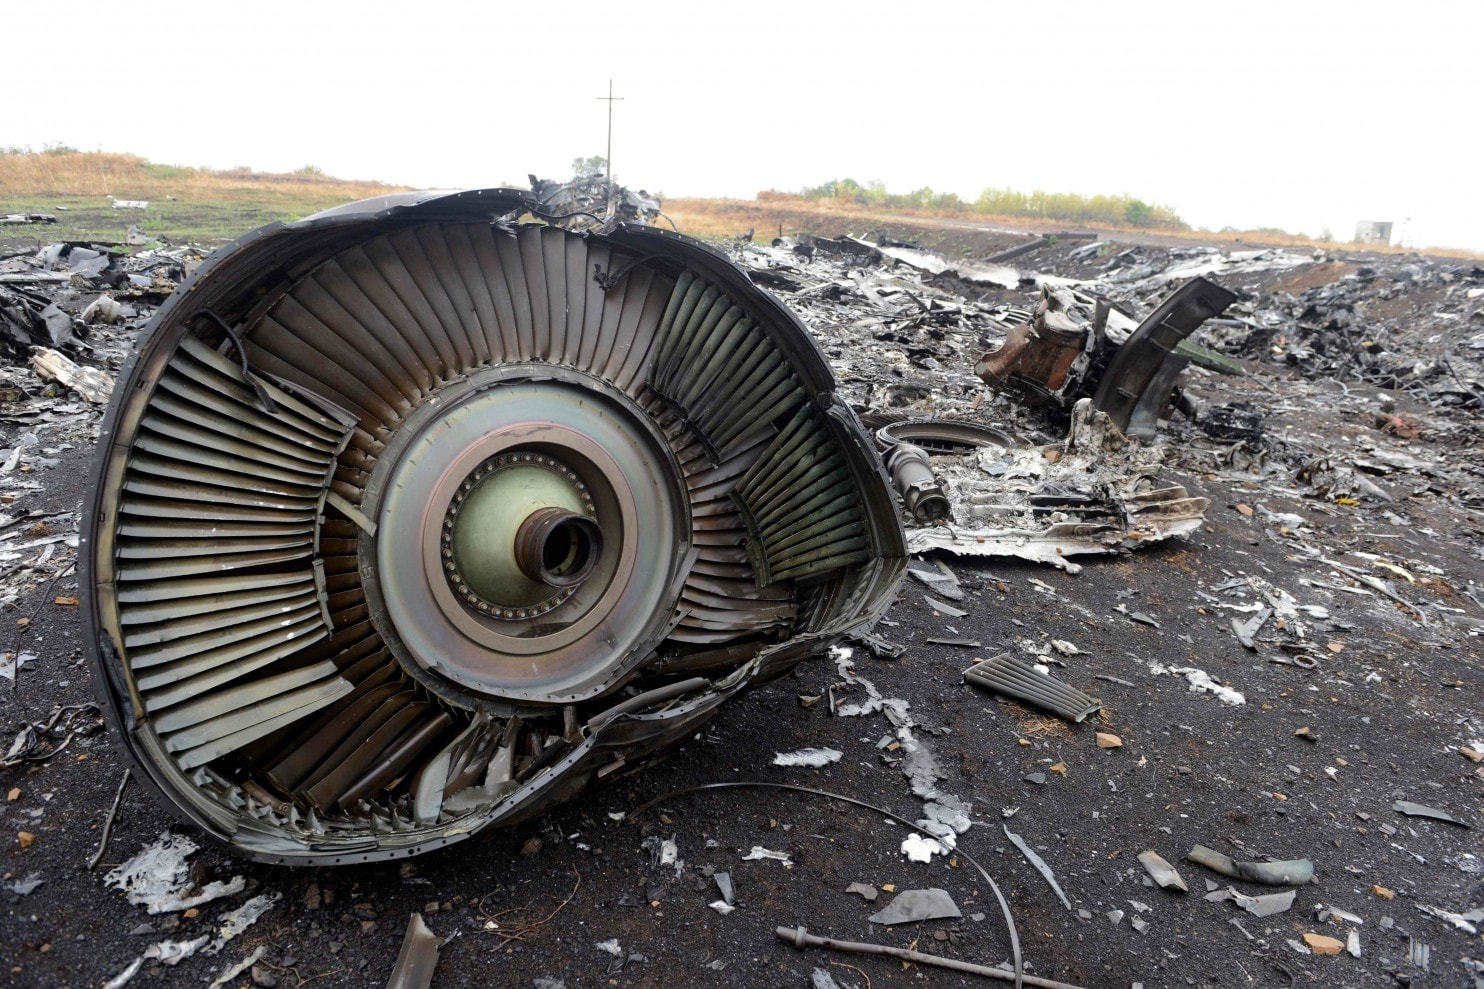 A step closer to the true story of the plane shot down over Ukraine